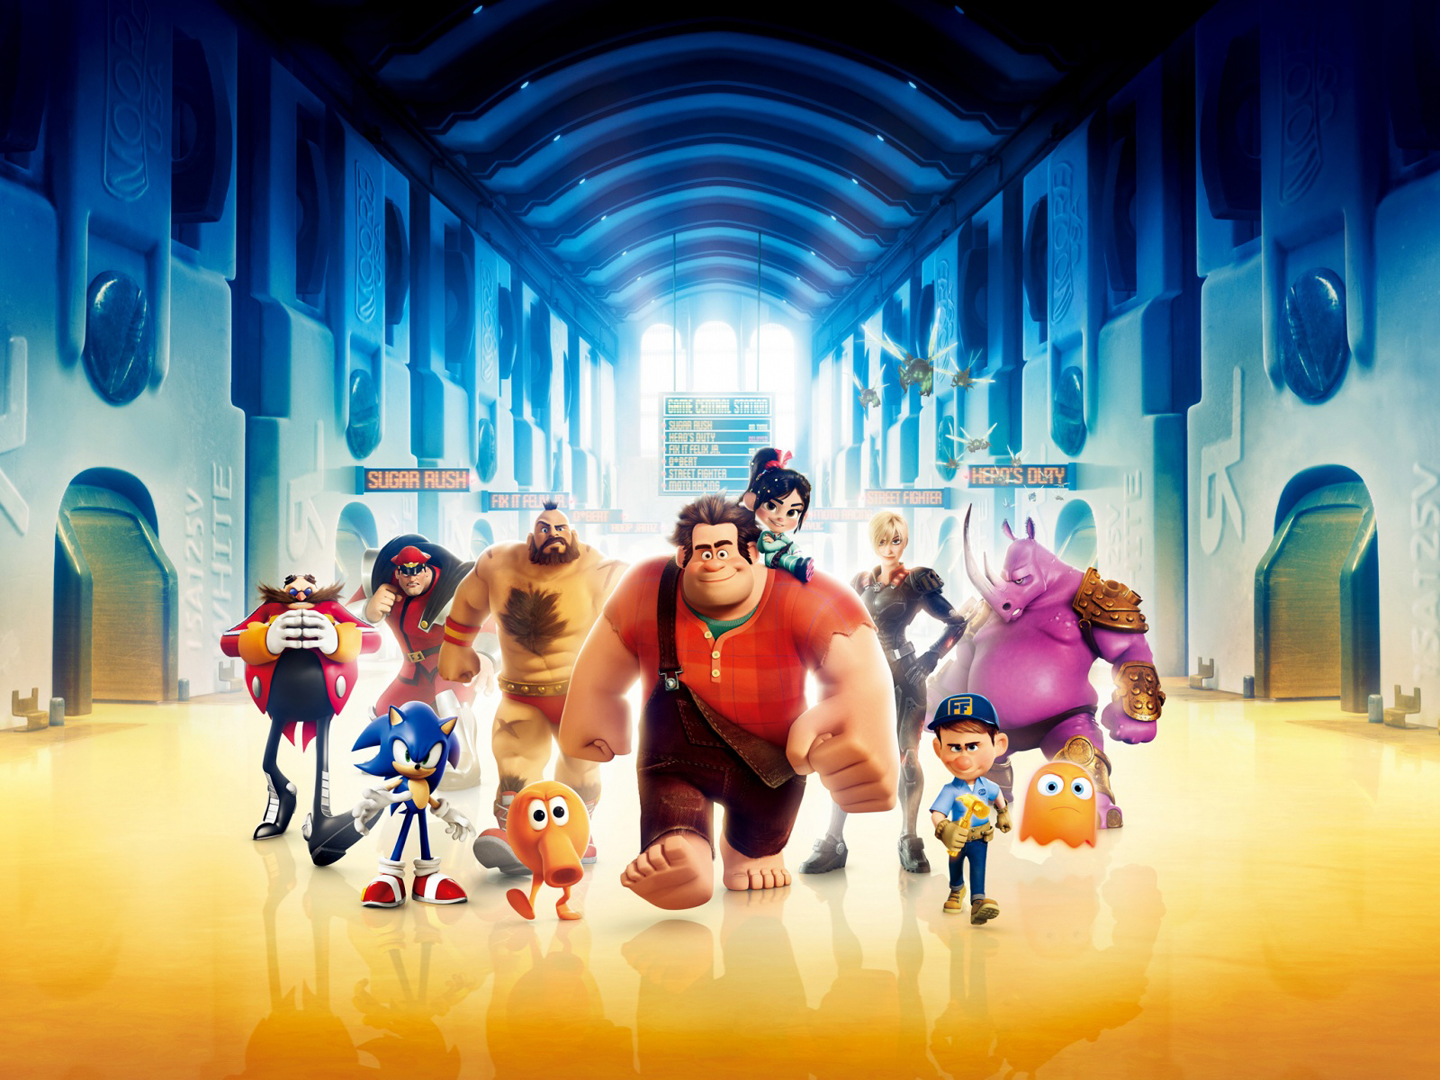 Disney wreck it ralph 3d animation hd wallpapers